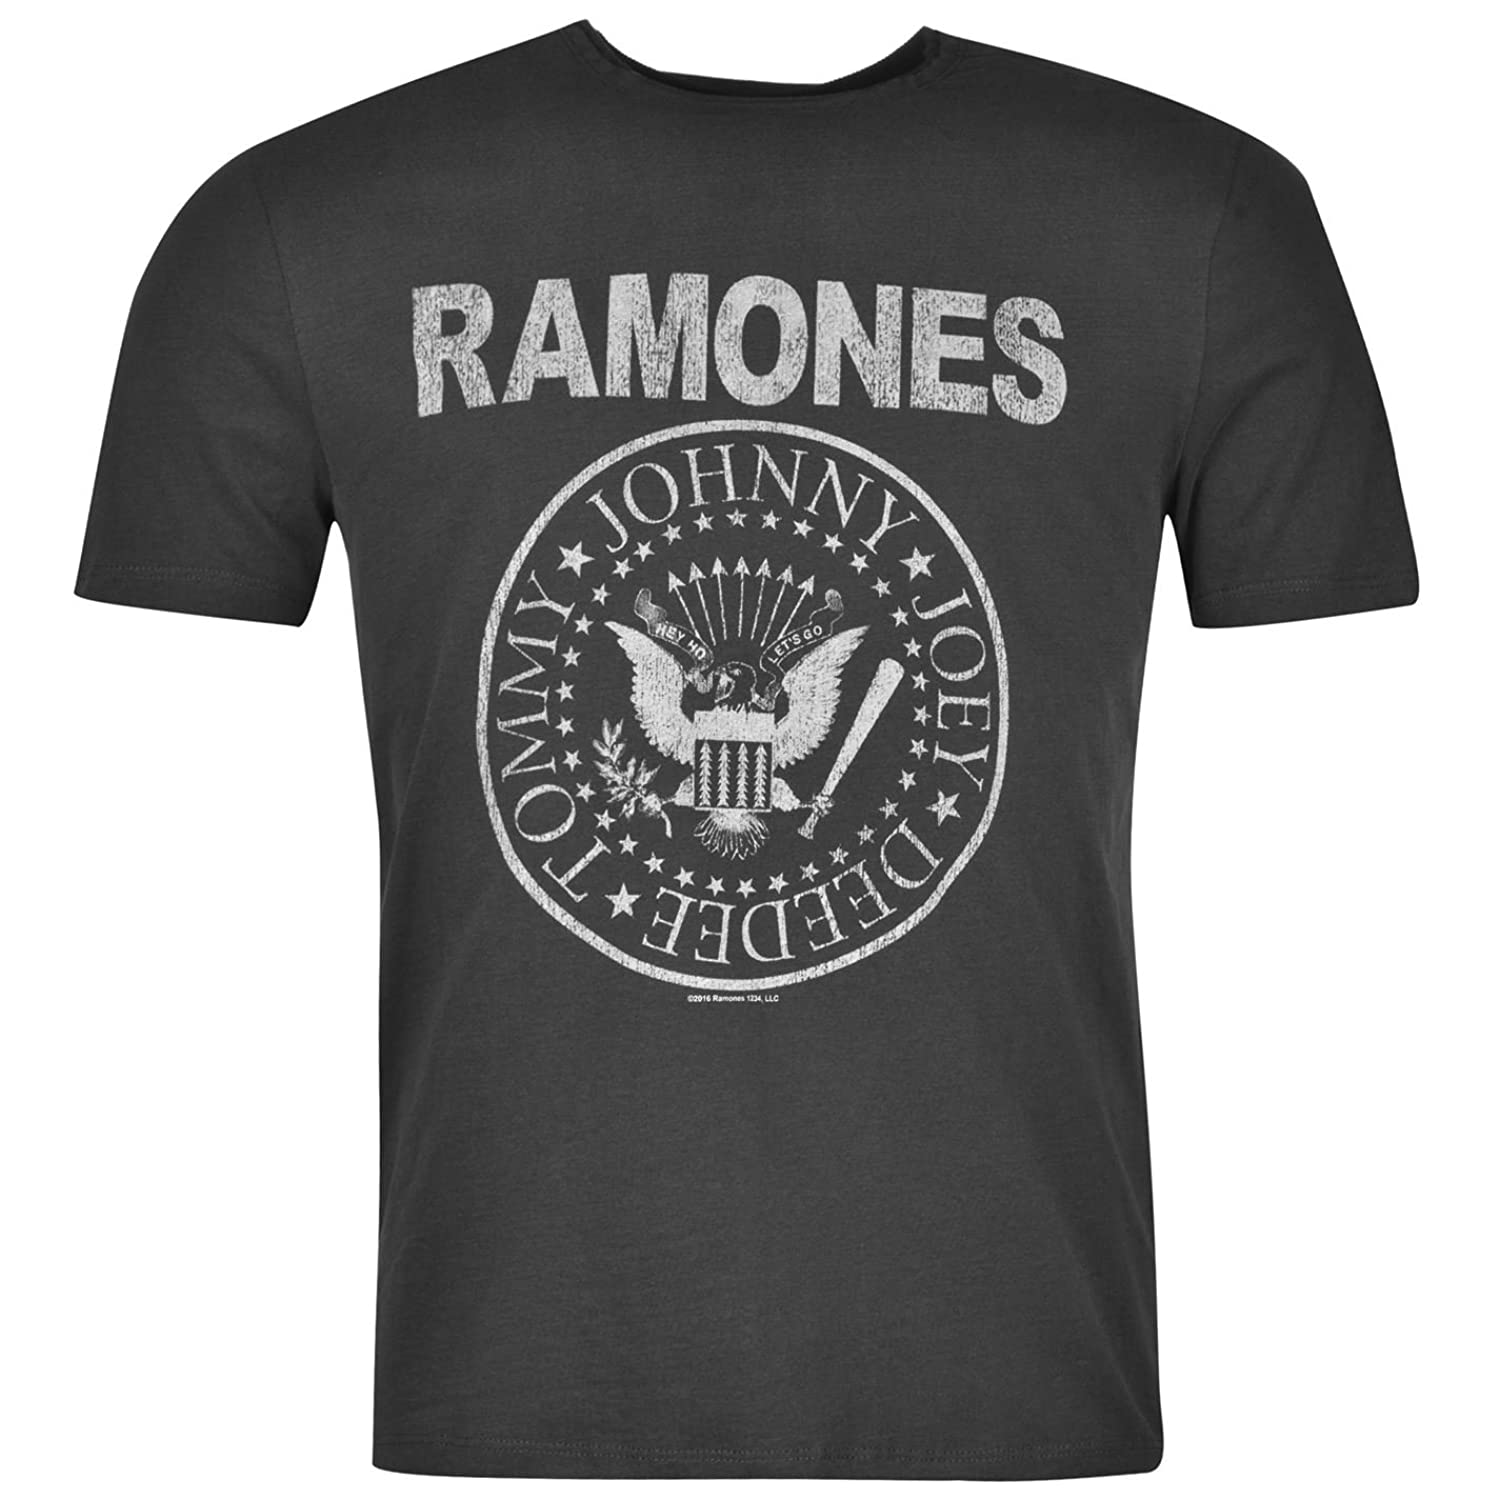 Amplified Clothing Mens The Ramones Crew Neck Short Sleeve T-Shirt Tee Top Casual